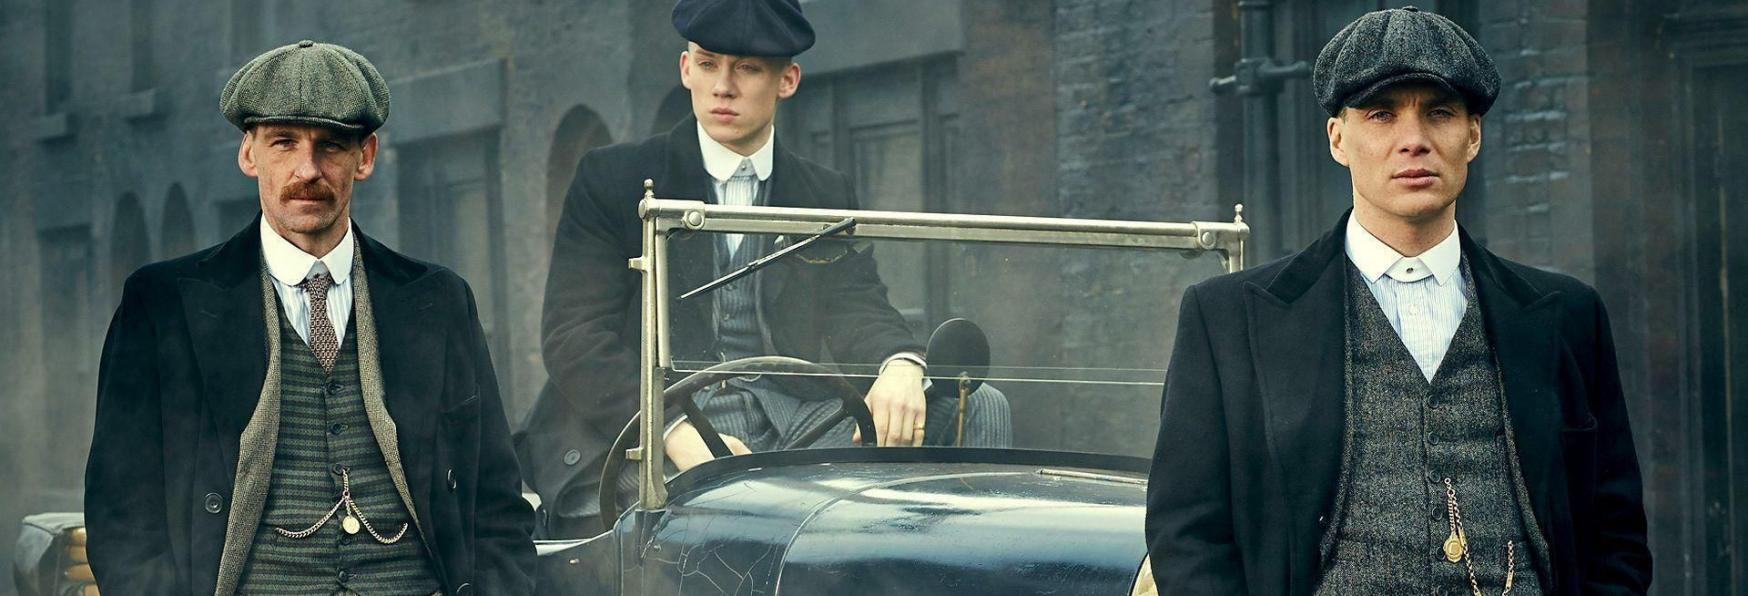 Netflix: le Serie TV in arrivo ad Ottobre 2019. Tra le Uscite, Peaky Blinders 5